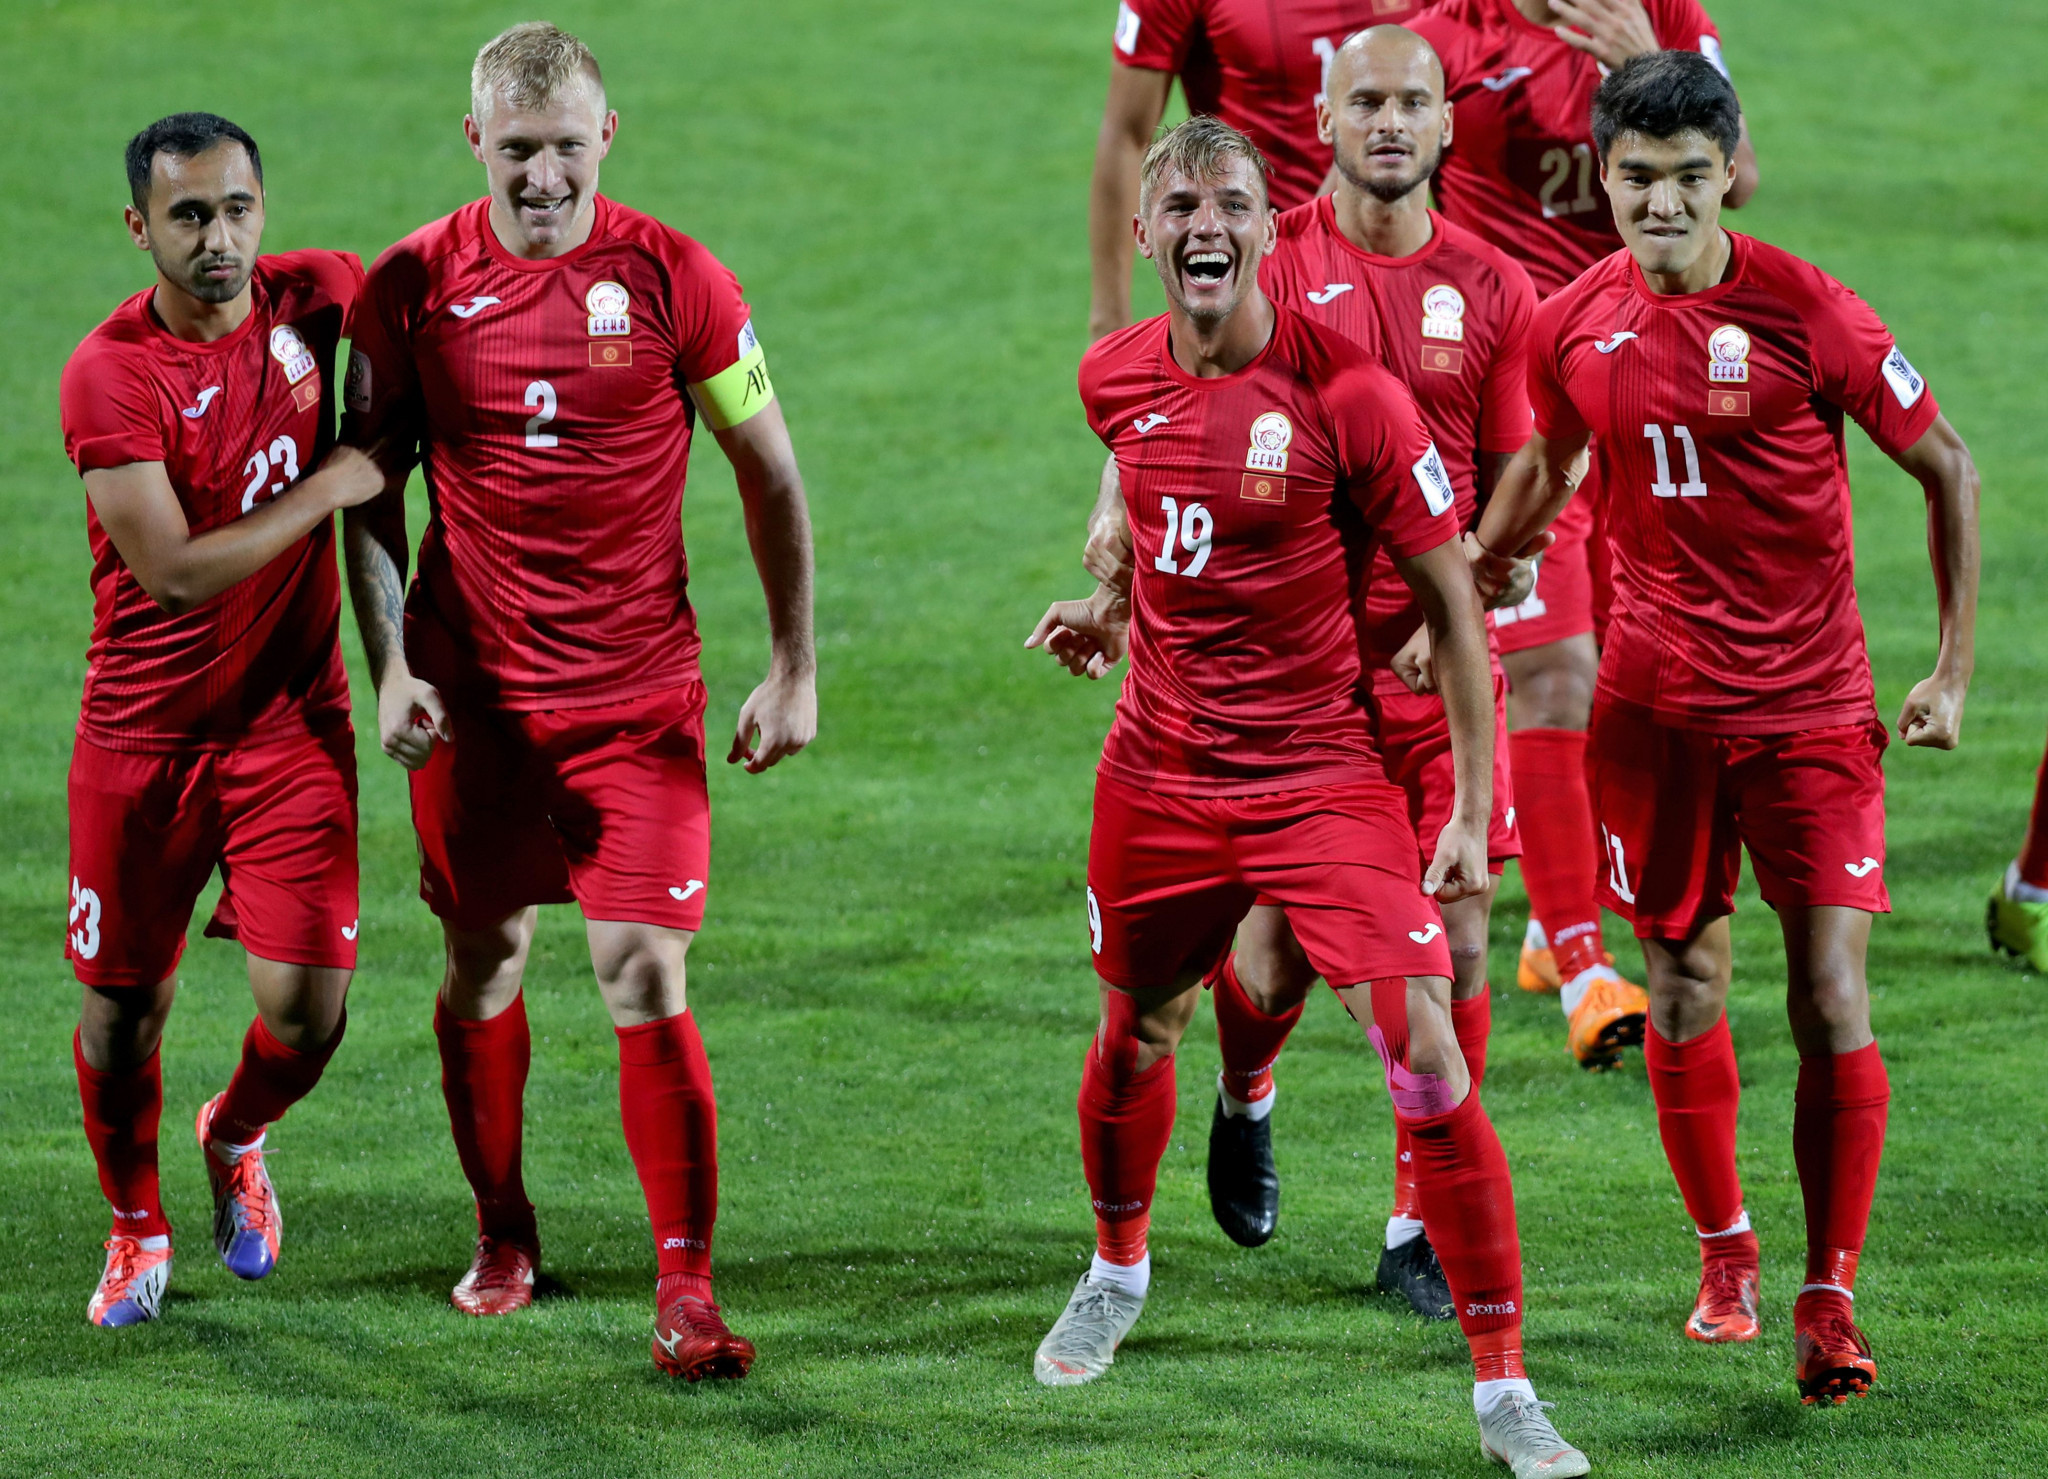 Kyrgyzstan celebrate getting their first AFC Asian Cup victory, with the team beating The Philippines 3-1 ©Getty Images